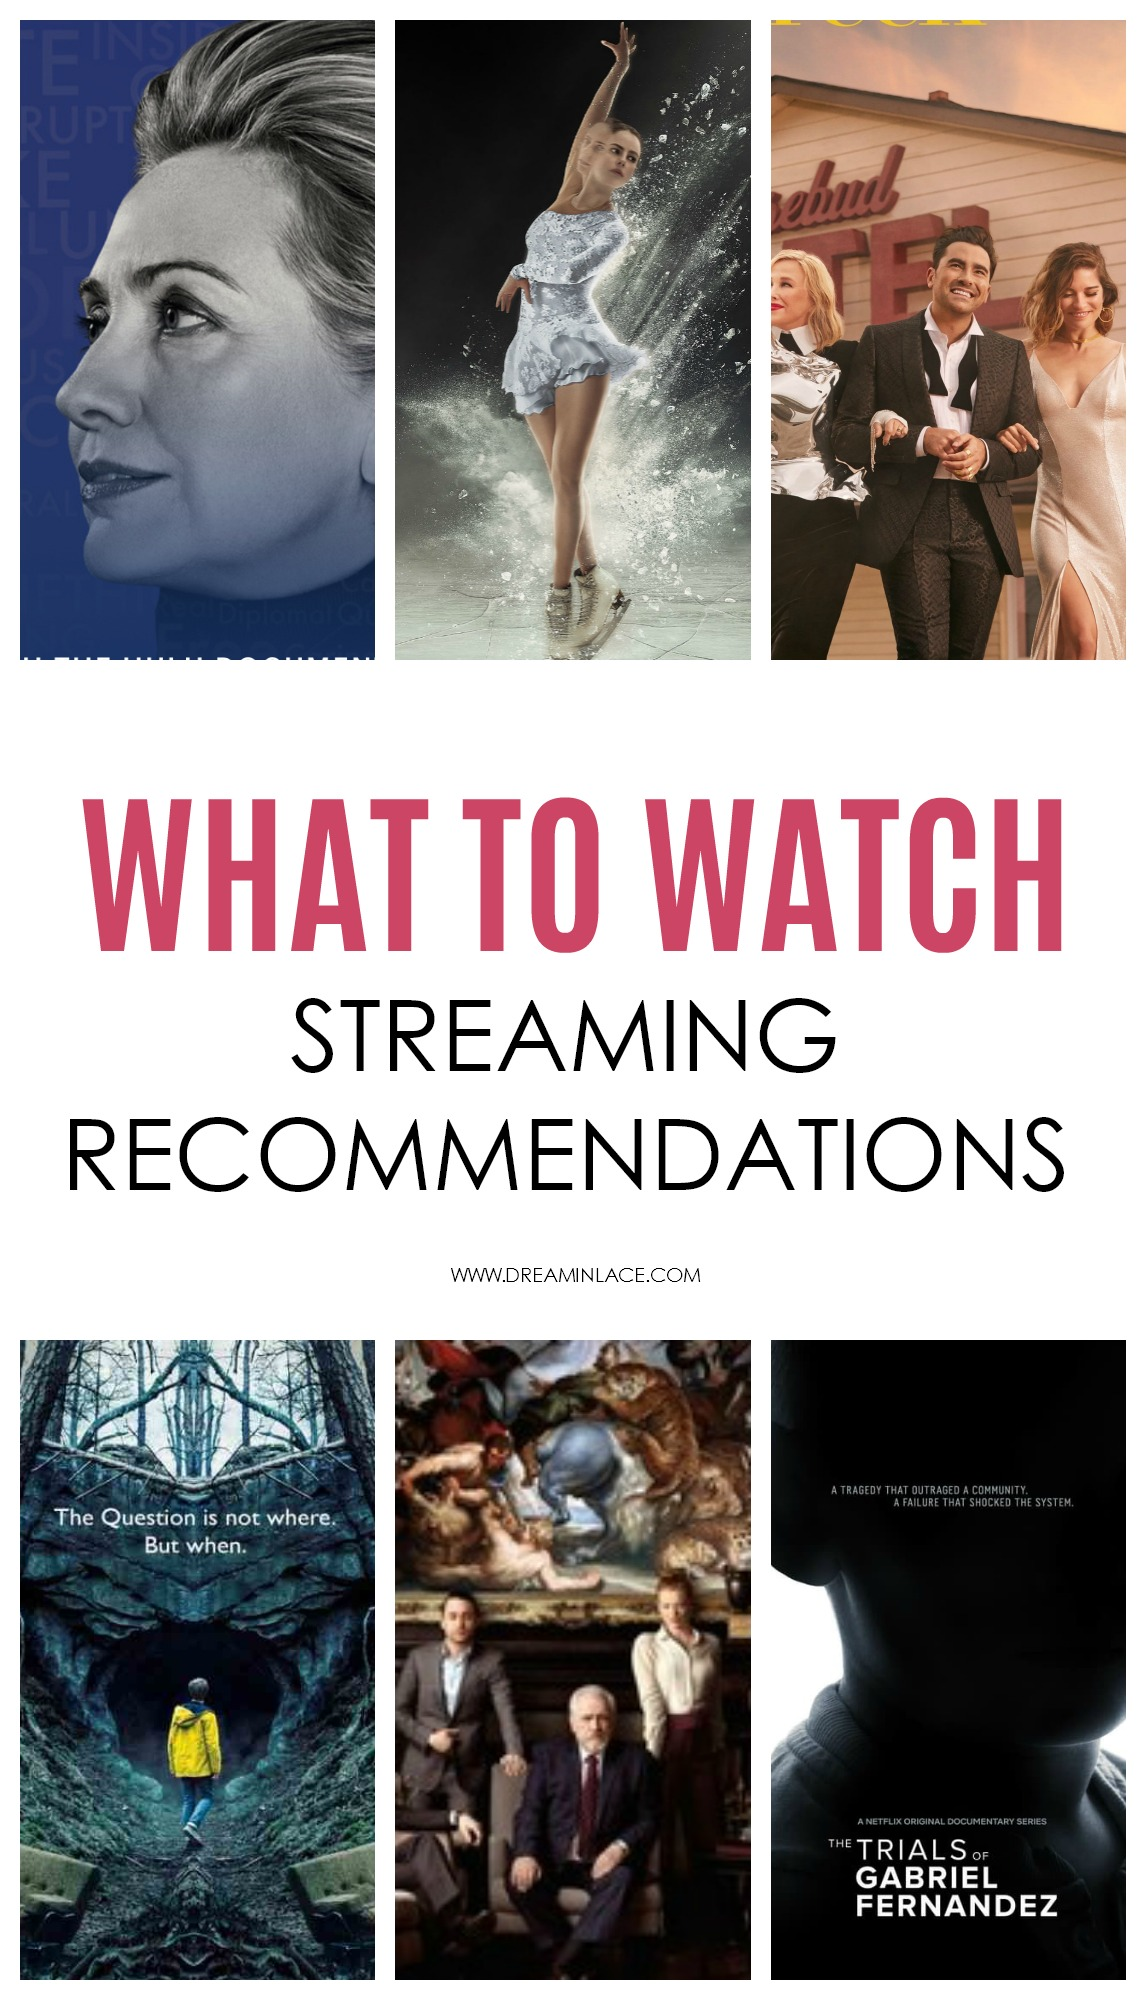 What to Watch I Streaming recommendations to help you pass the time at home during the coronavirus outbreak.